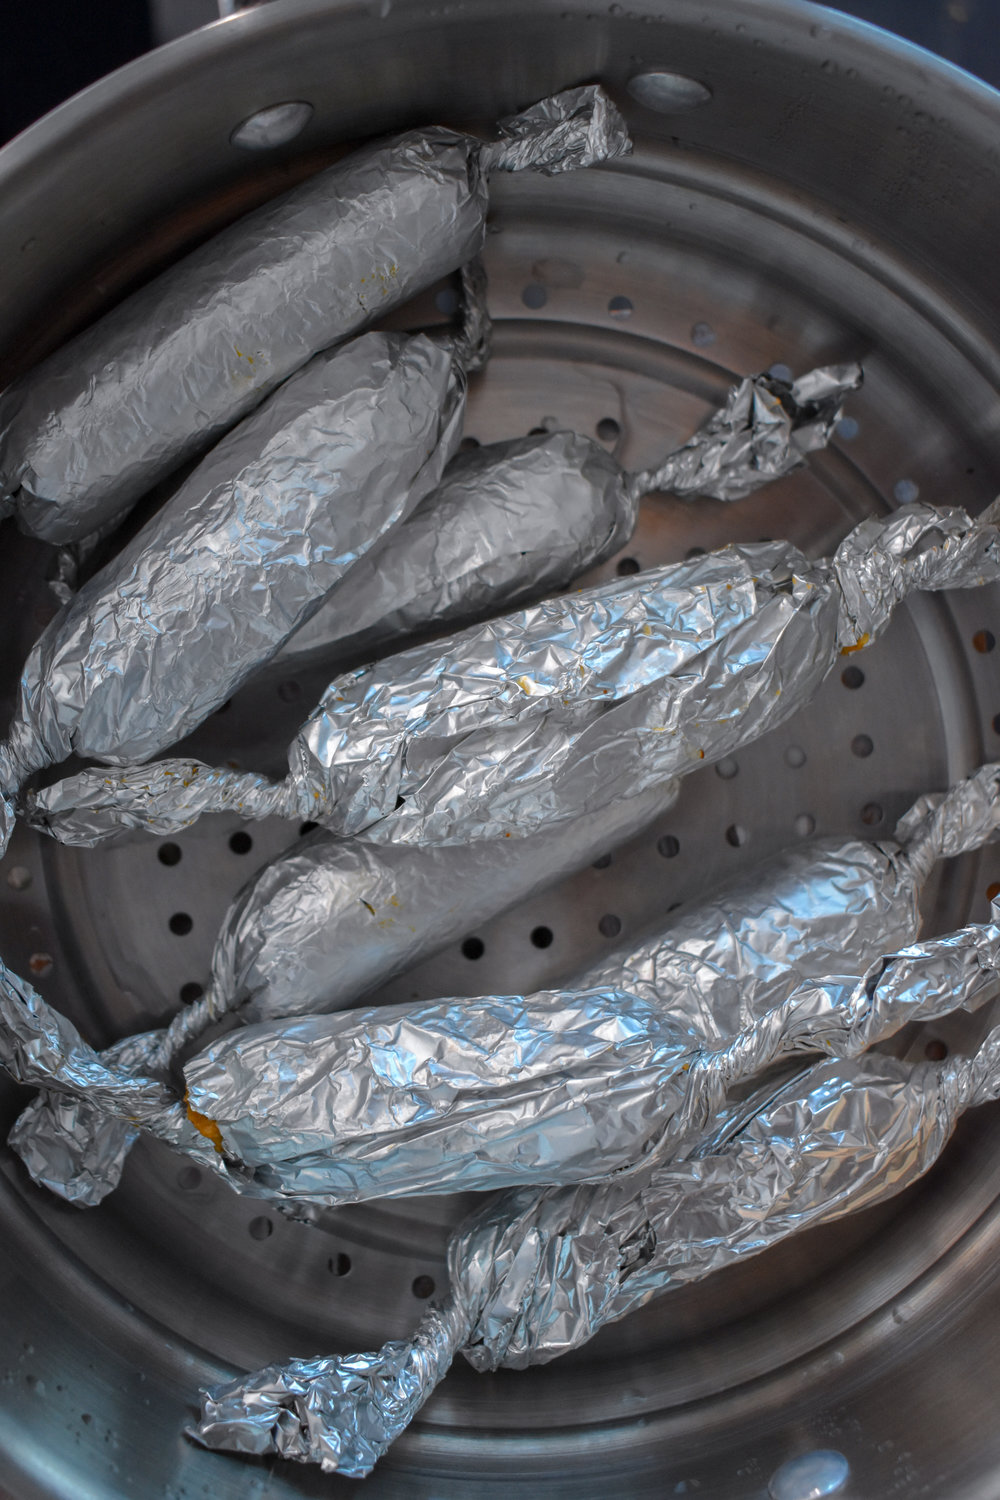 7. Place the rolled up dogs in the top of a steamer pot pan with boiling water underneath and cover. Cook for about 45 minutes.